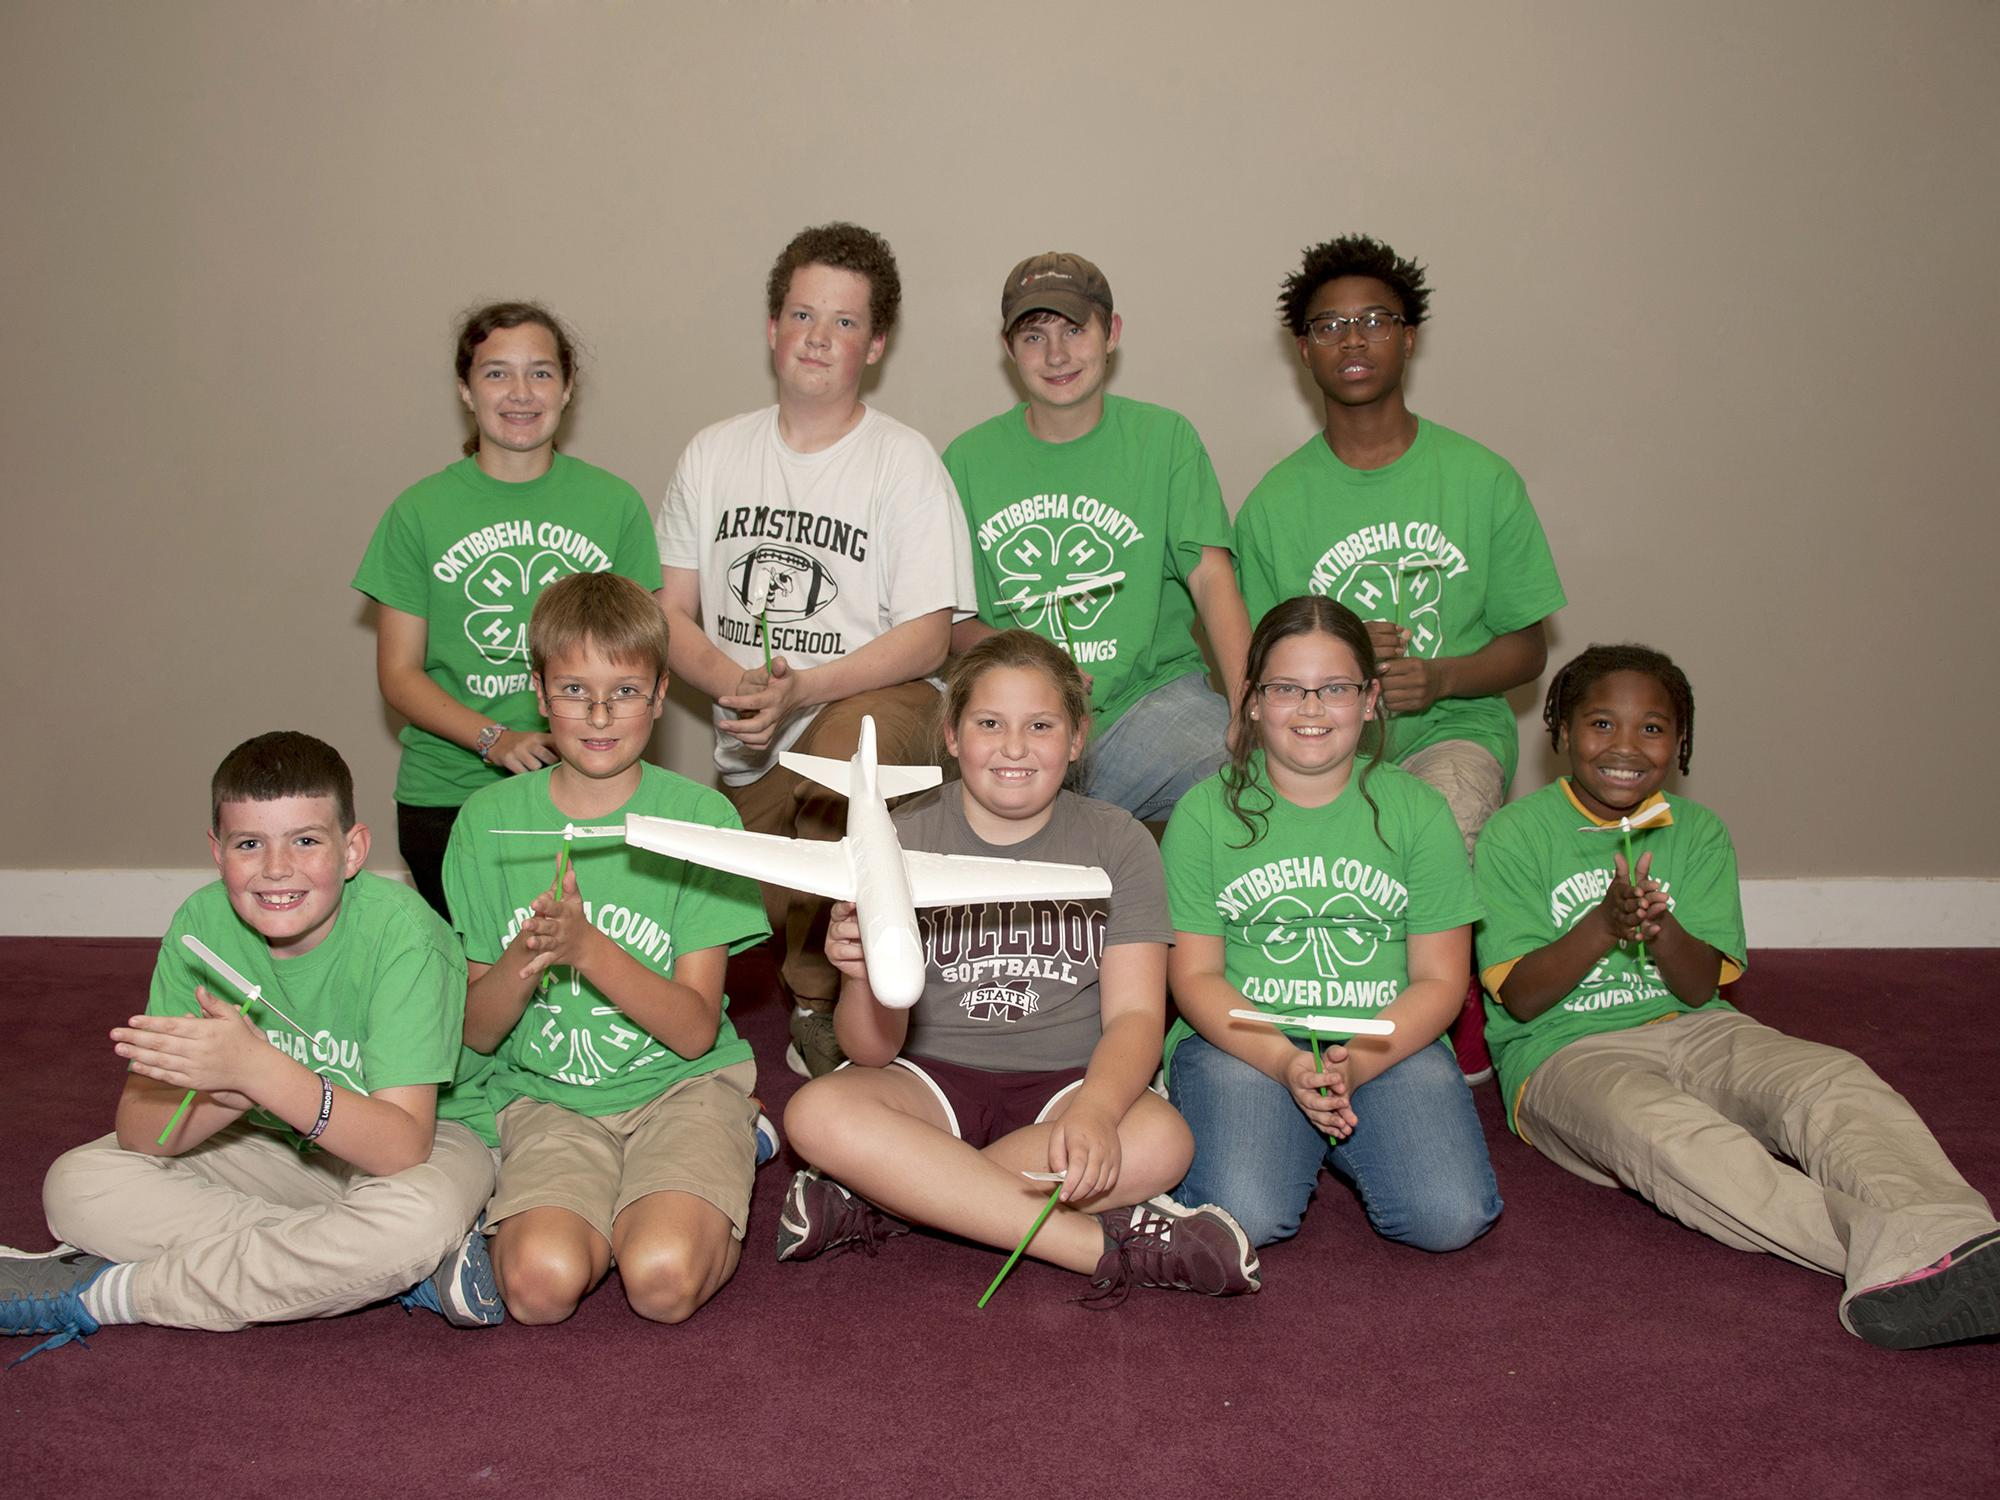 Mississippi 4-H'ers in the Oktibbeha County Clover Dawgs robotics engineering club celebrate 4-H National Youth Science Day. The Oct. 5 event features an engineering challenge for young people. (Photo by MSU Extension Service/Kat Lawrence)